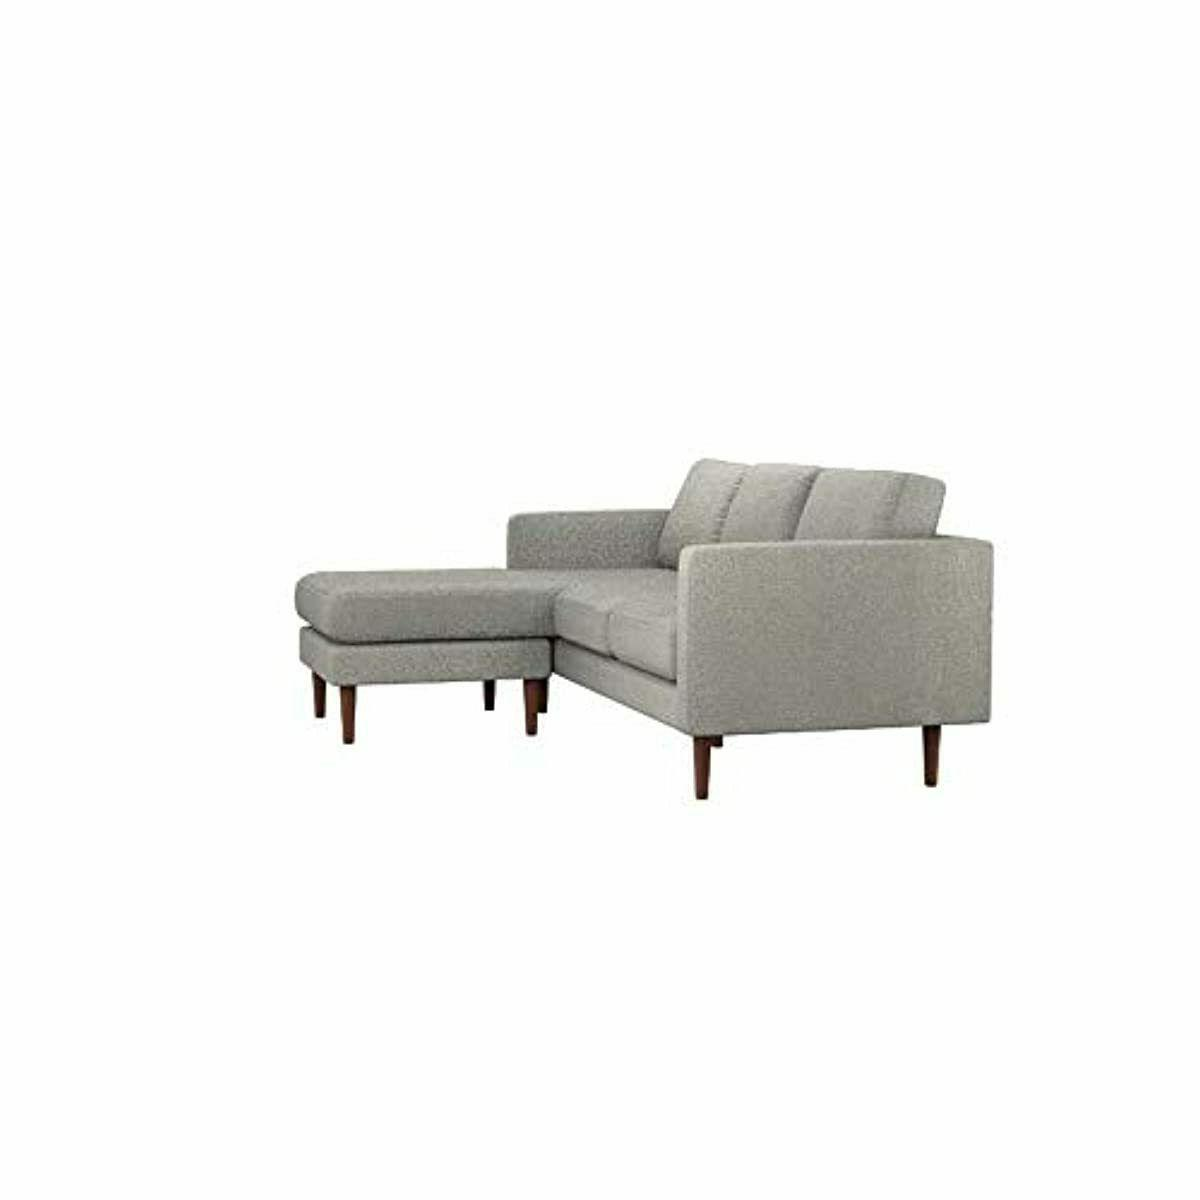 Amazon Revolve Upholstered with